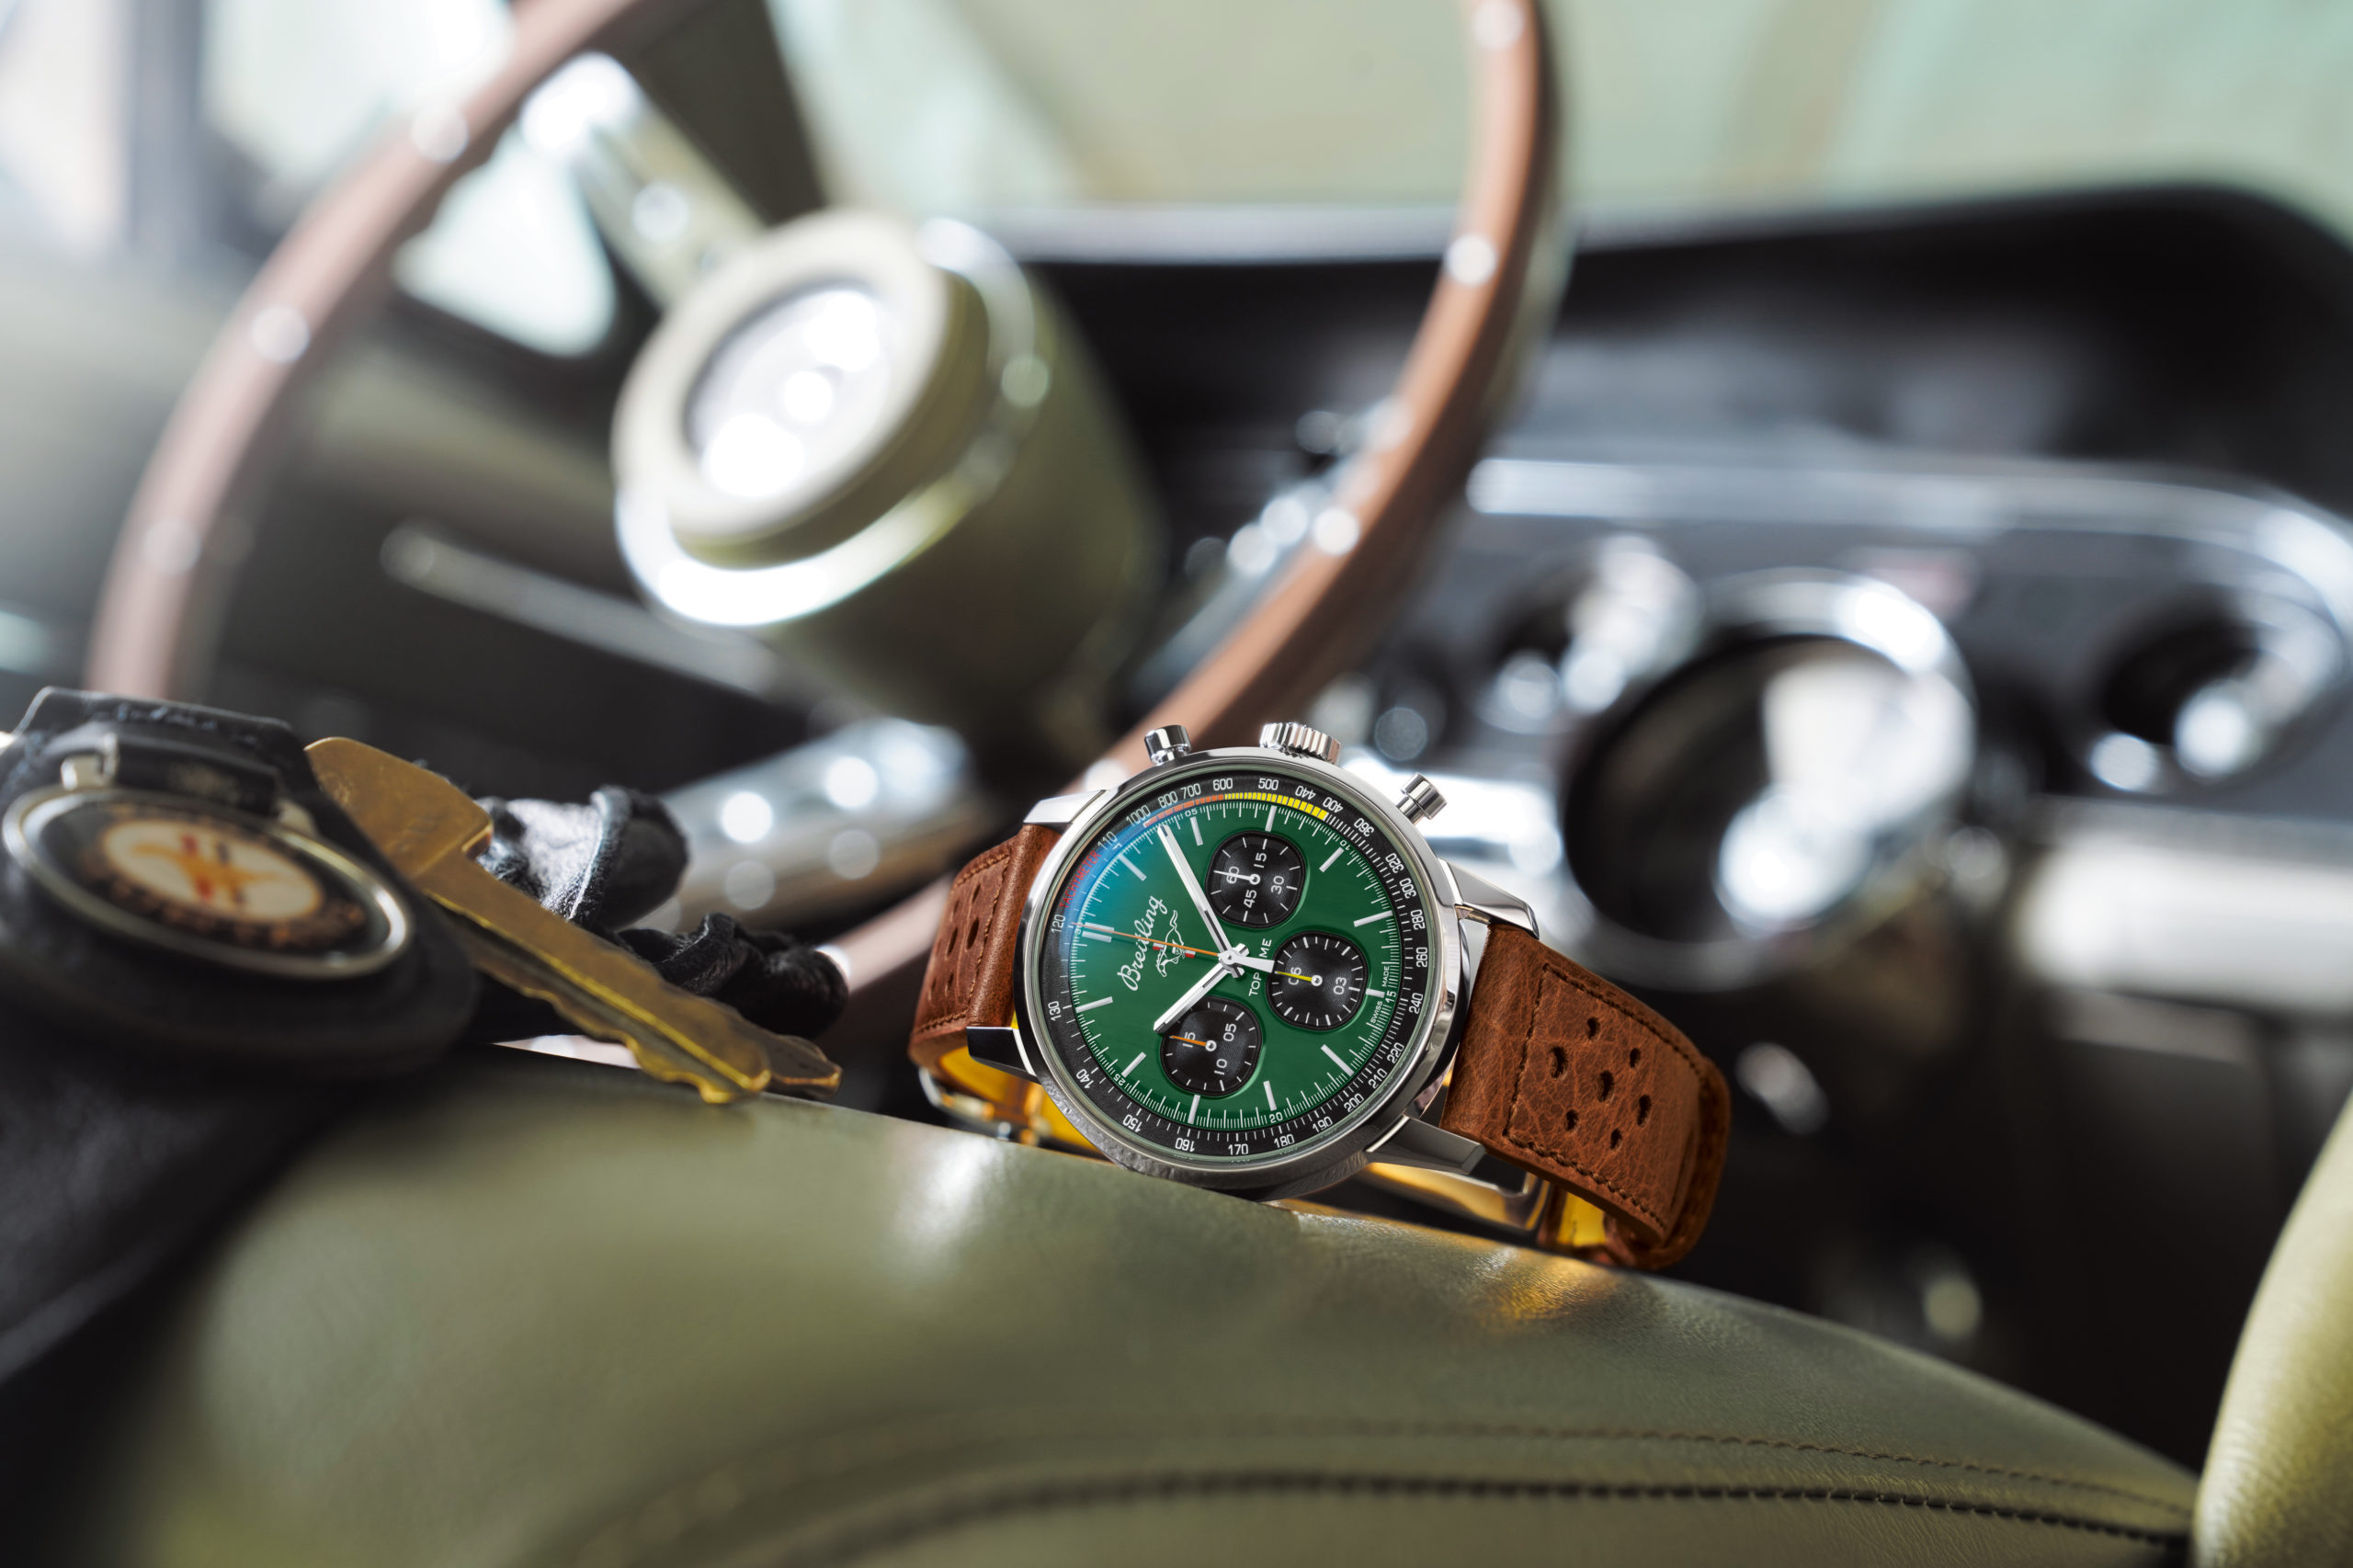 Breitling's Top Time